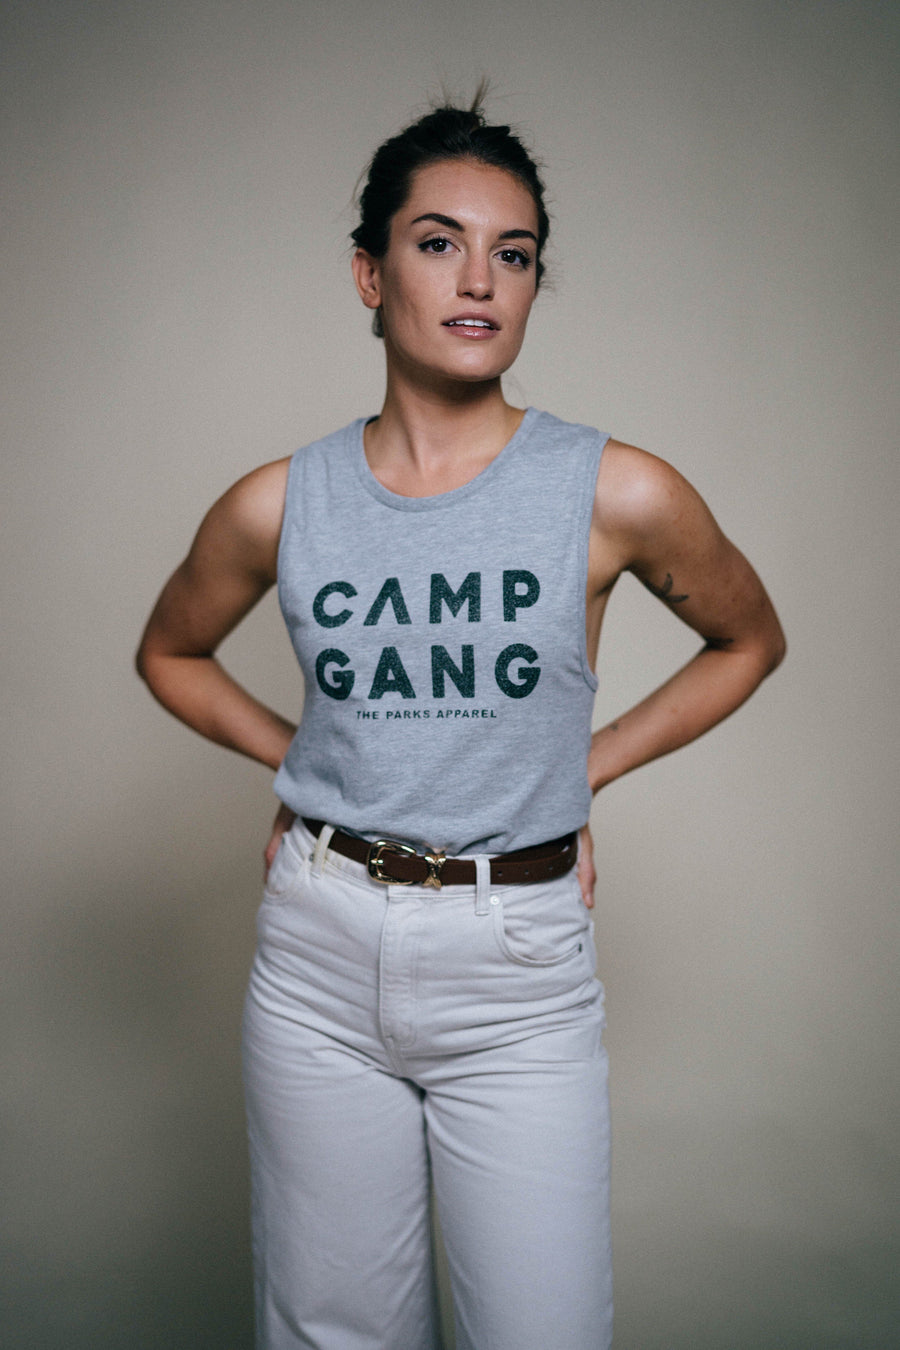 Camp Gang Racerback Tank - Wondery, A Parks Apparel Brand